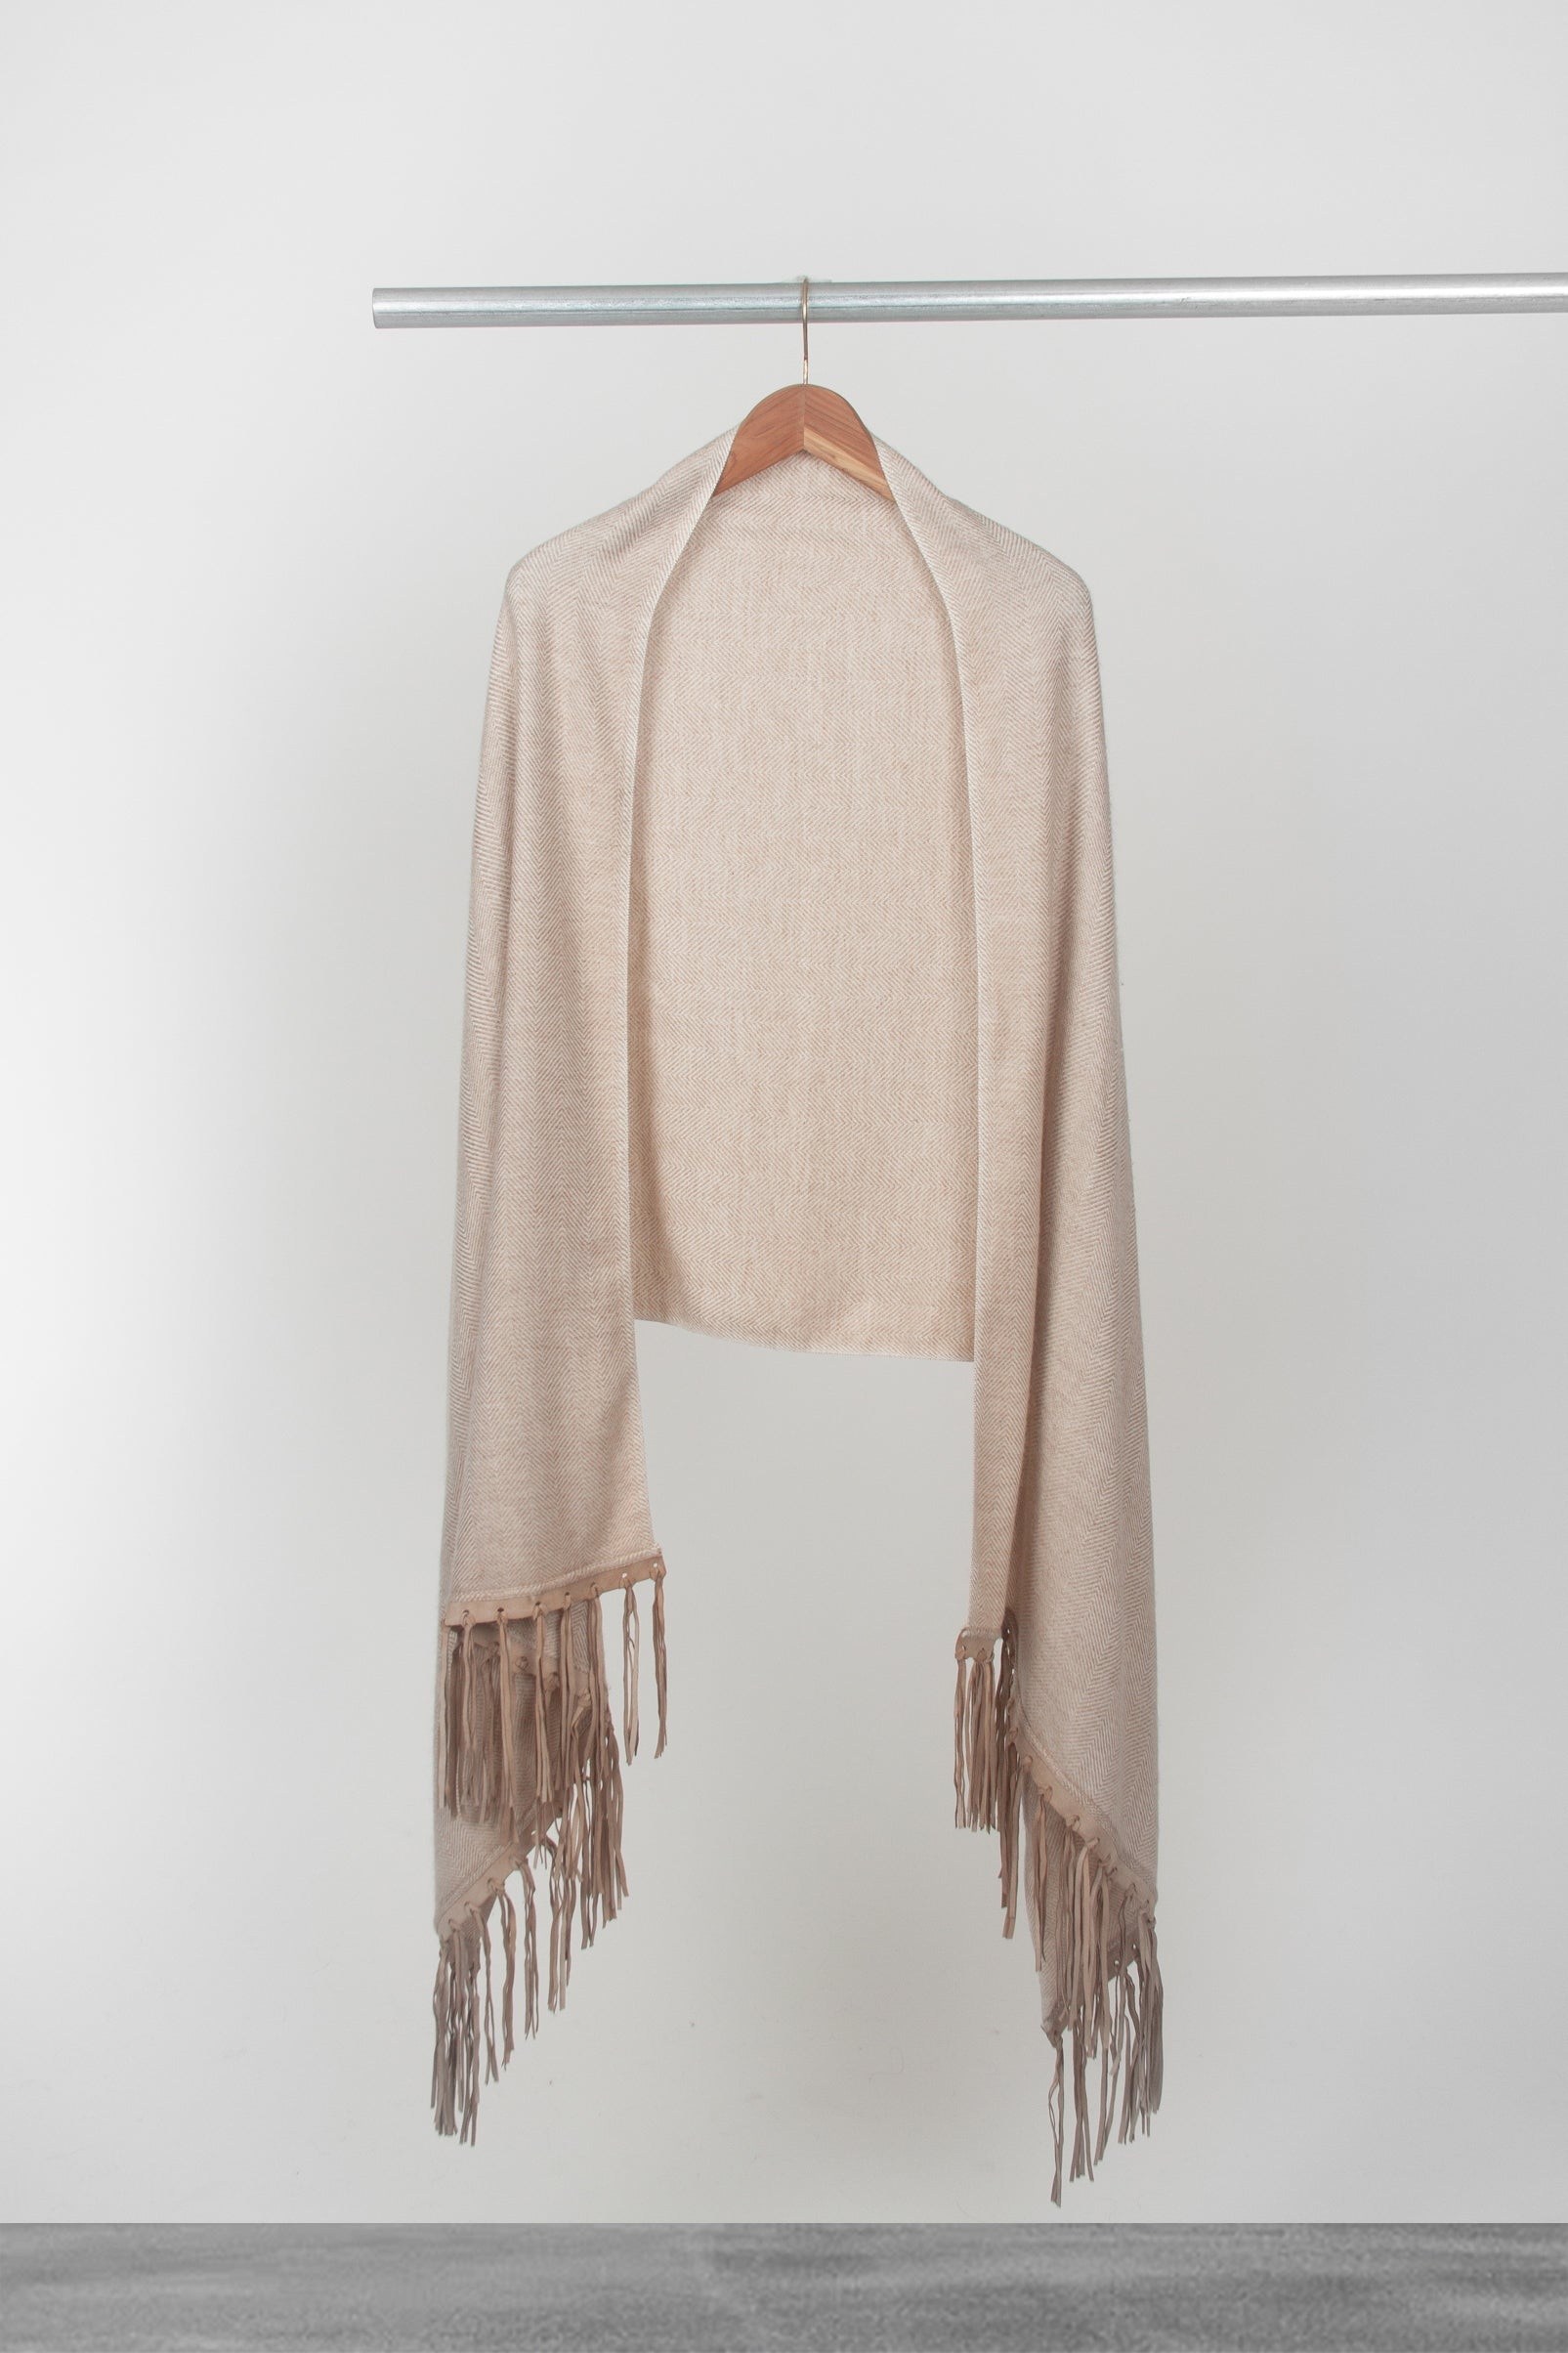 Light Tan Vertical Striped Shawl - La Lo La Clothing